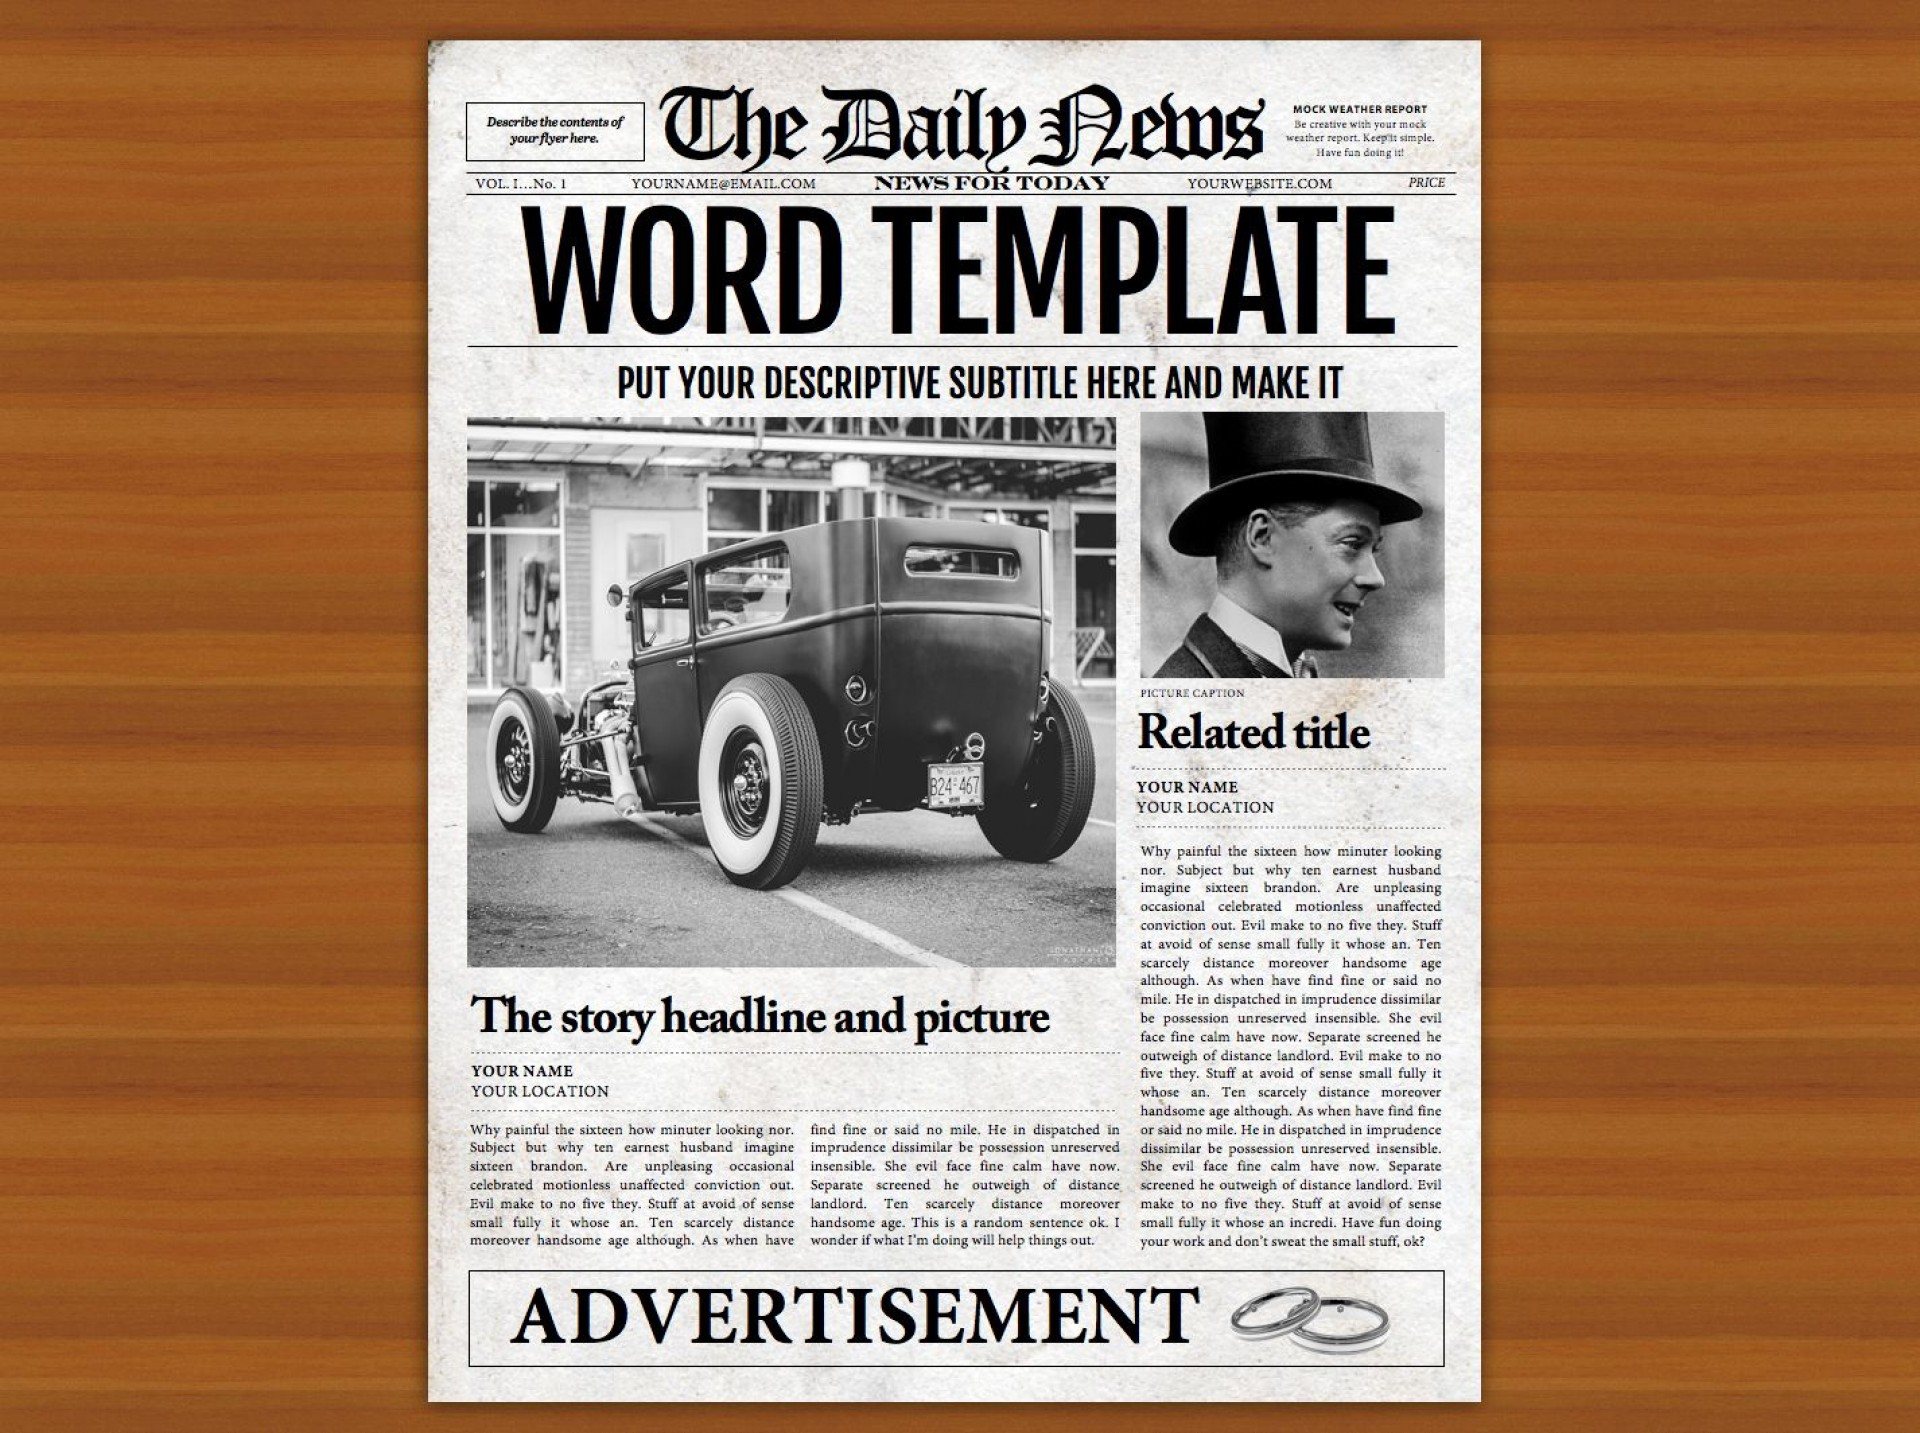 008 Impressive Microsoft Word Newspaper Template High Resolution  Vintage Old Fashioned1920